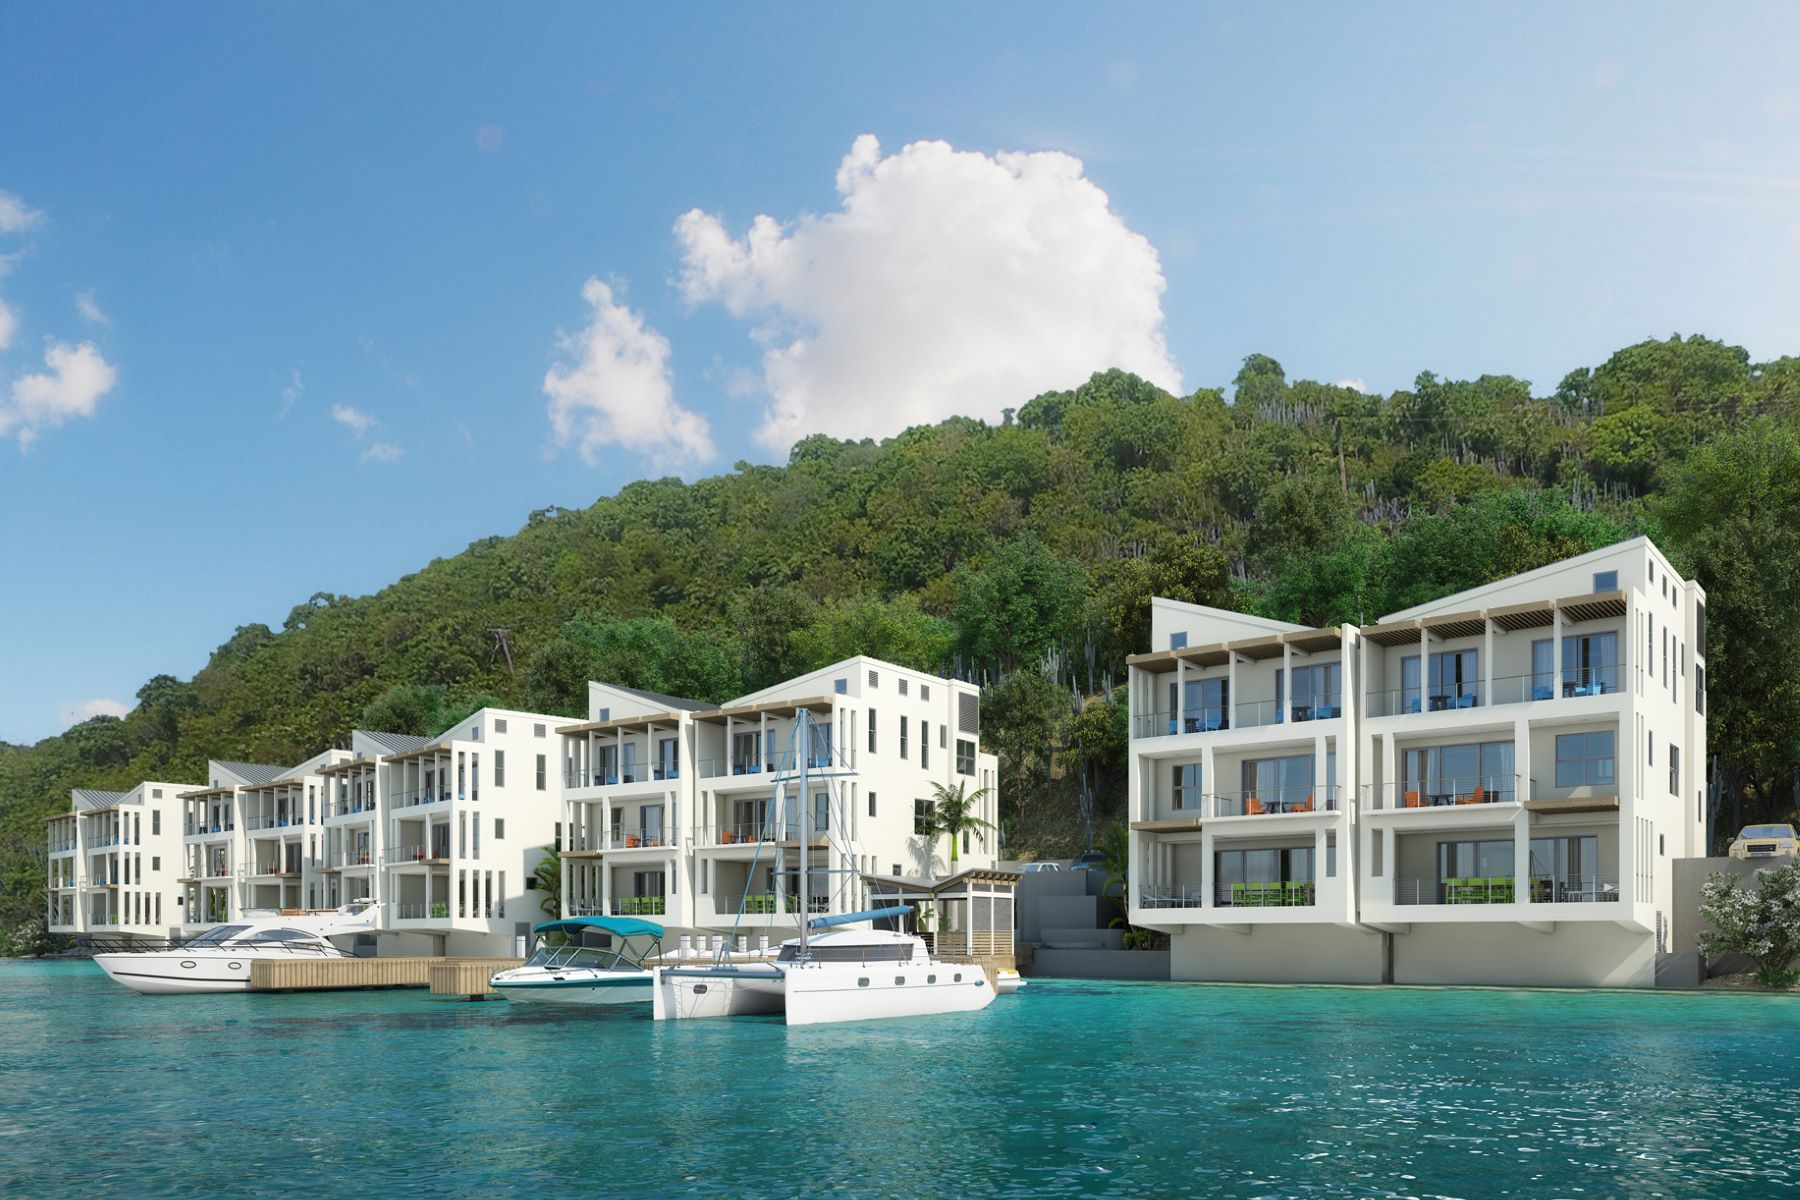 Additional photo for property listing at Brandywine Bay Oceanfront Condos Other Tortola, Τορτολα Βρετανικεσ Παρθενοι Νησοι